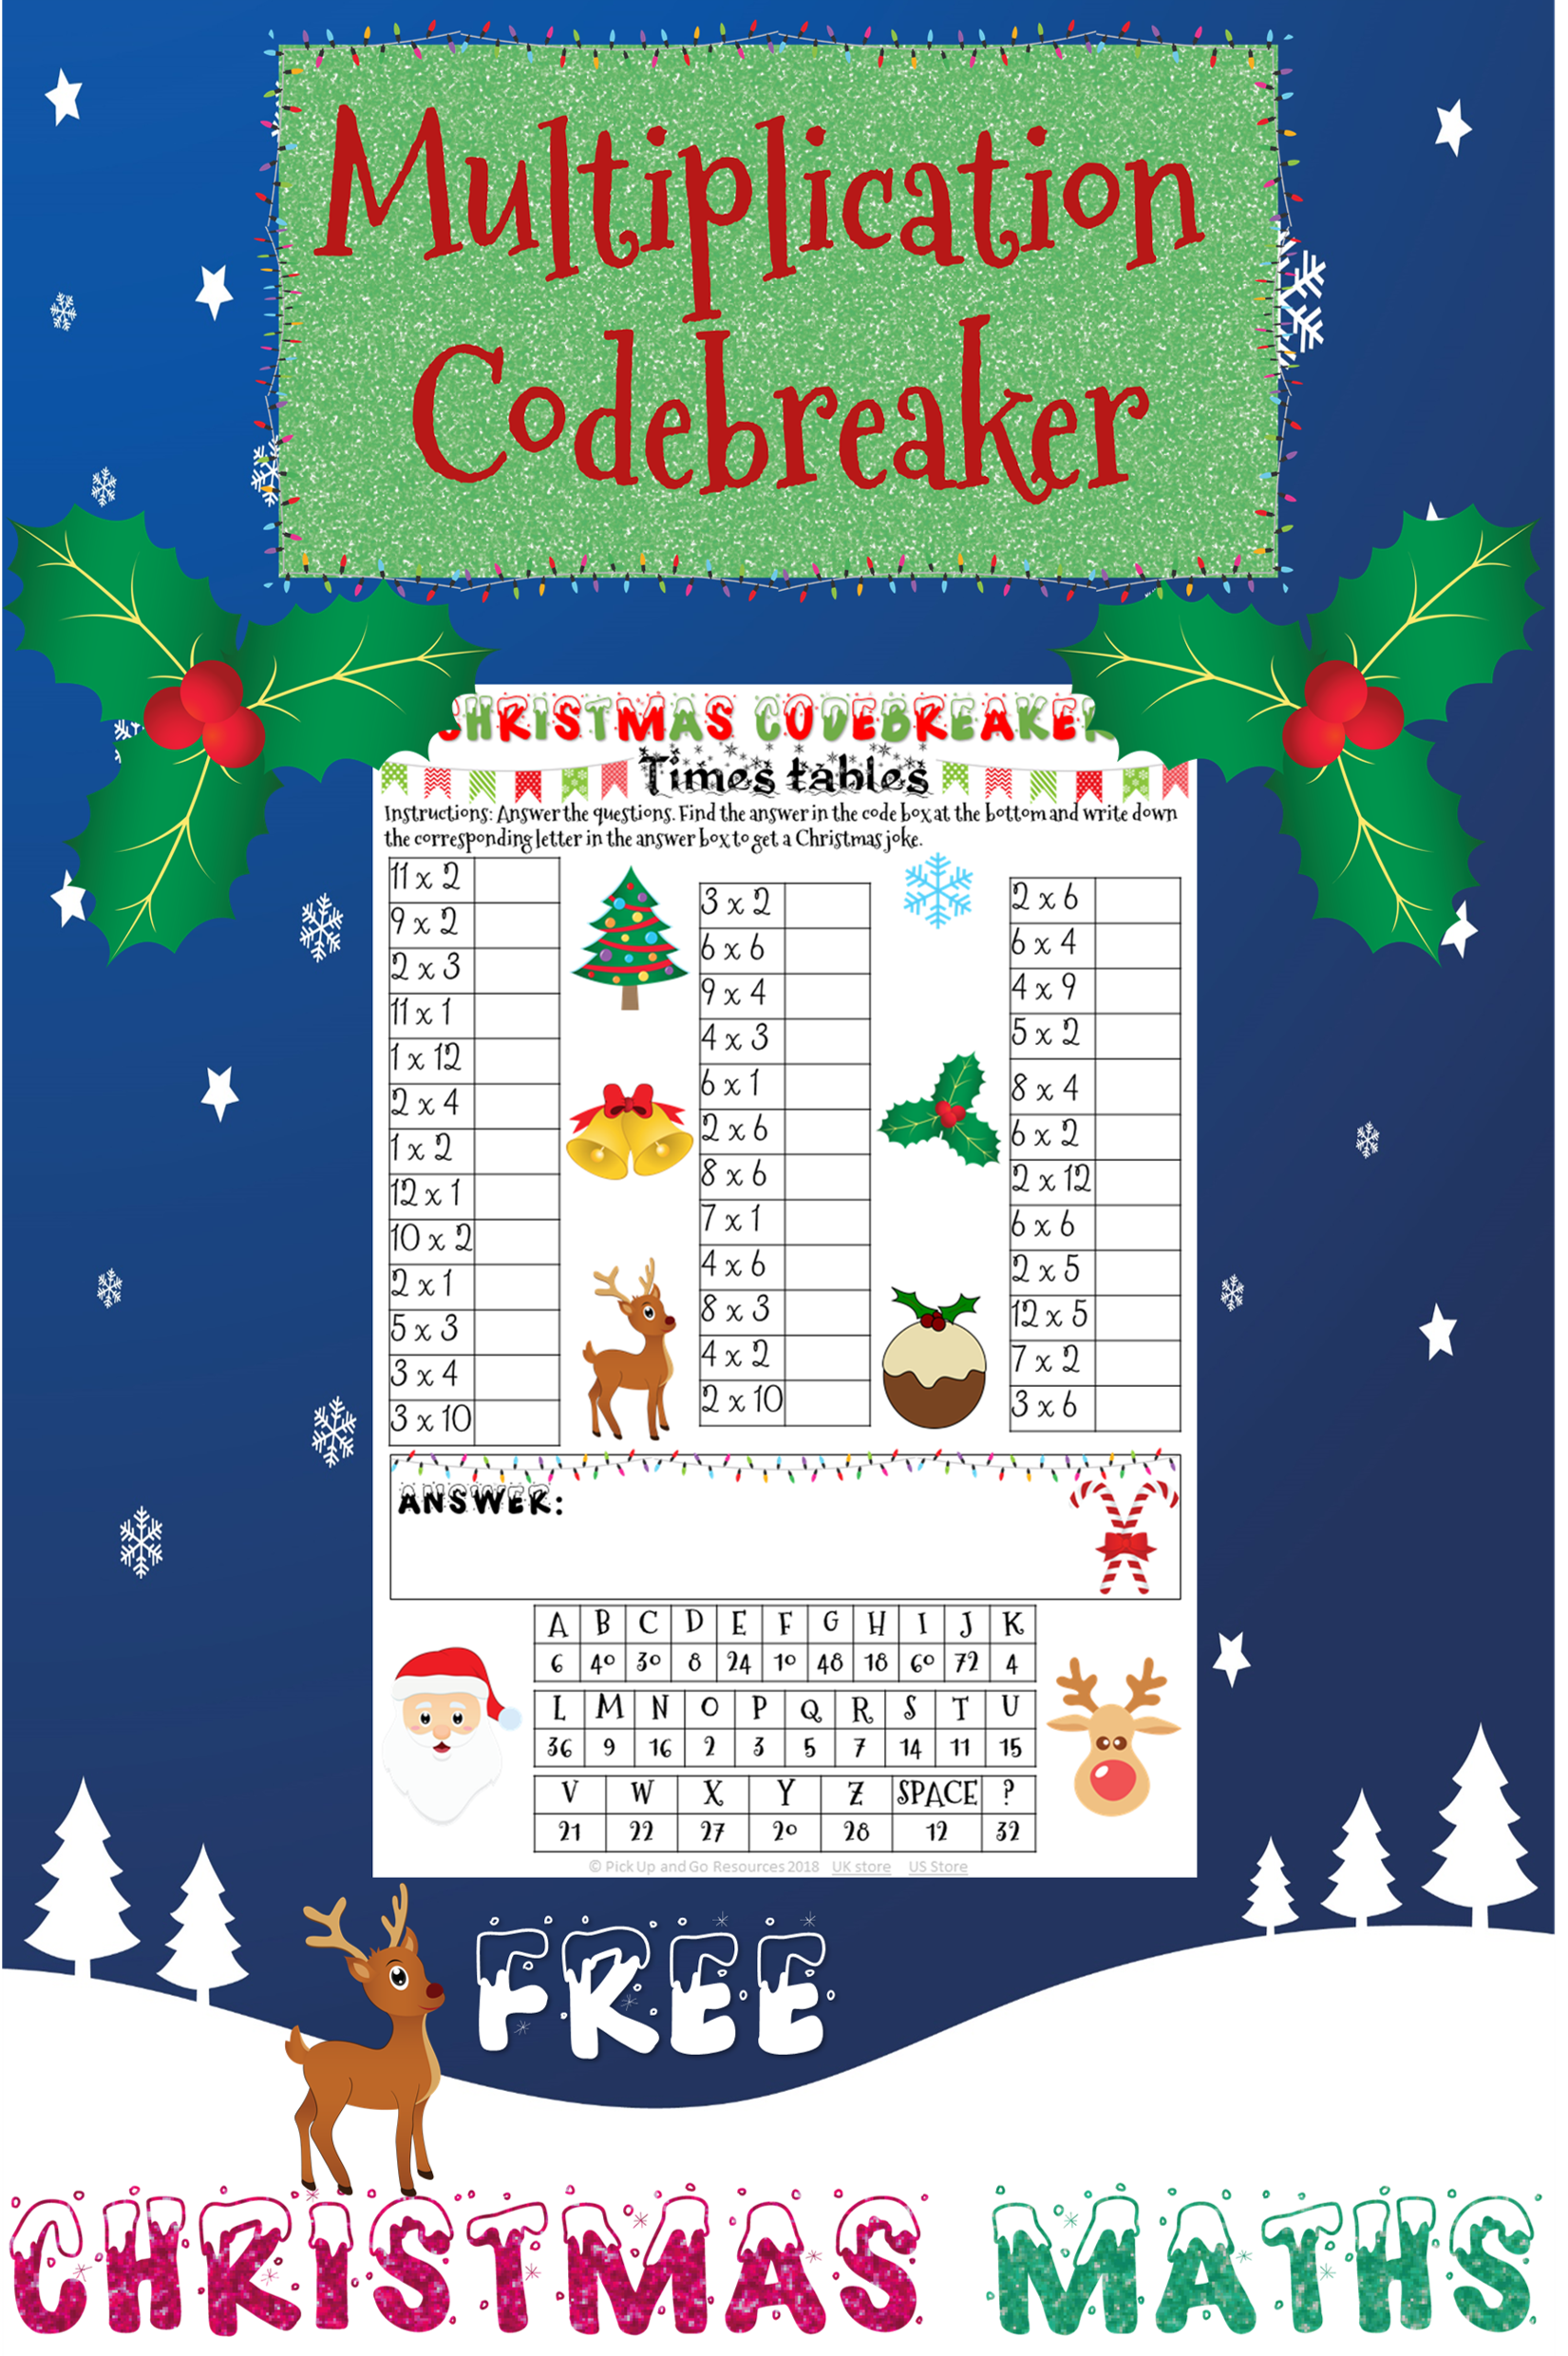 This Christmas Maths Code Breaker Gives Students Lots Of